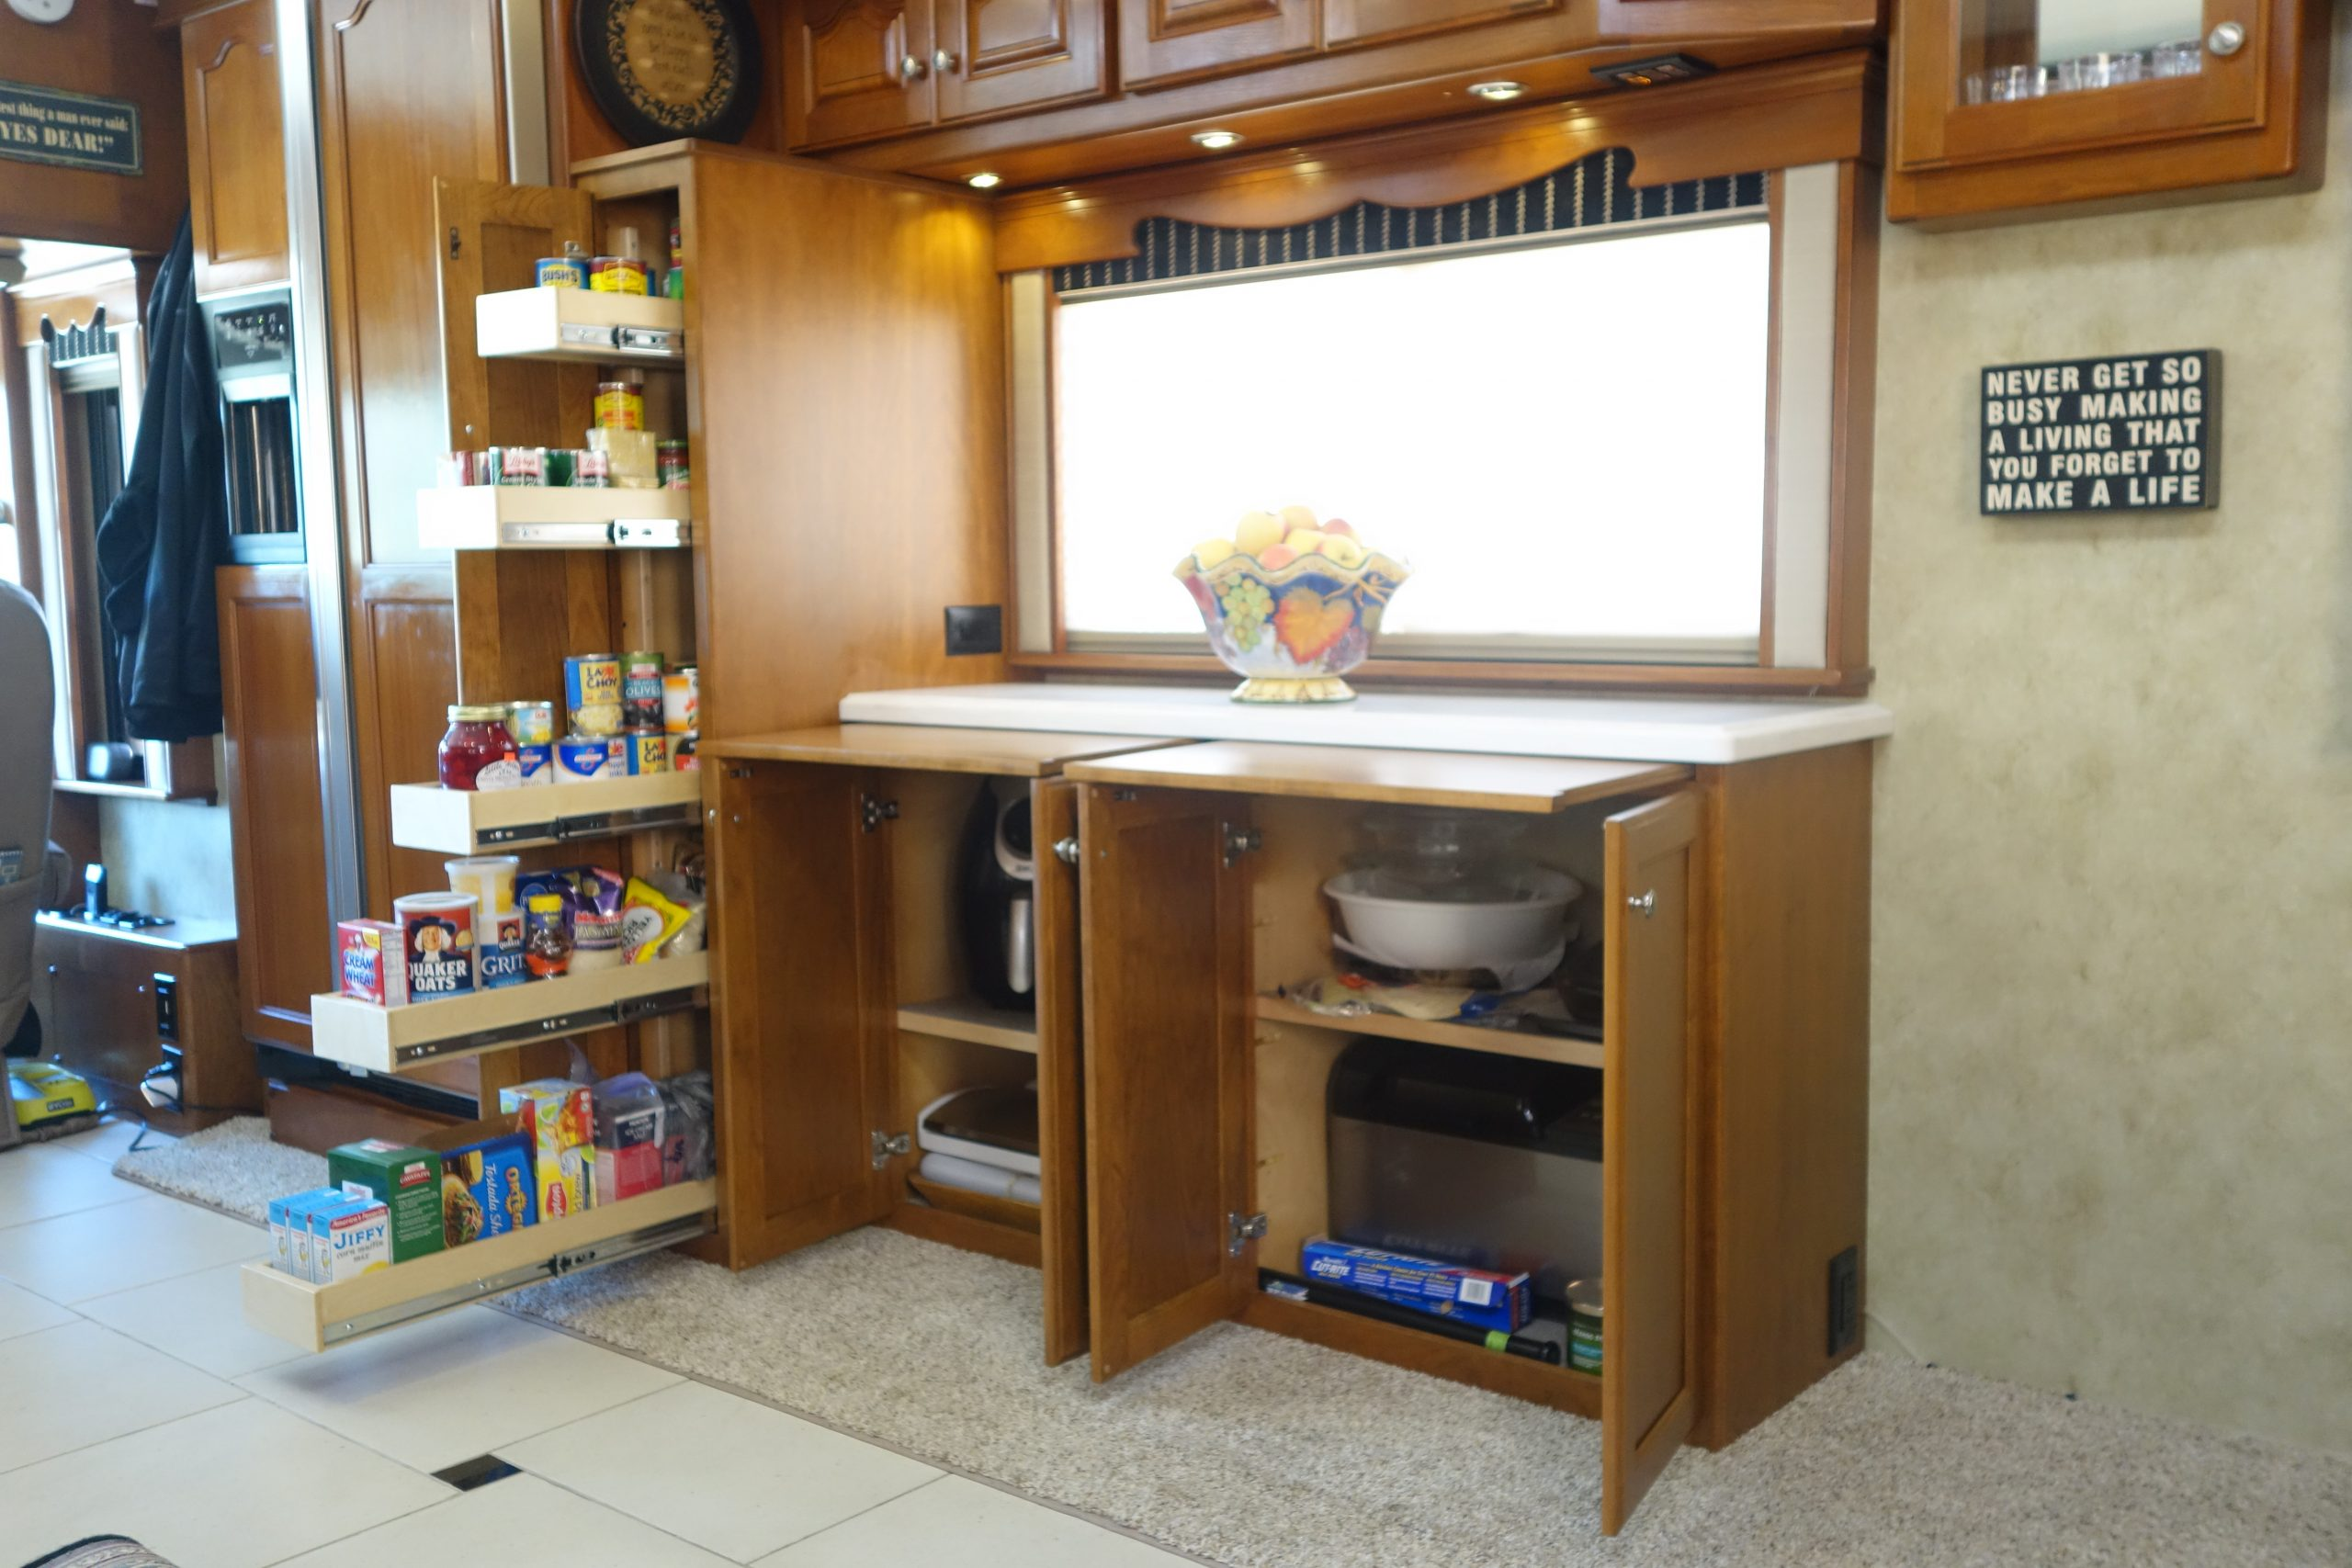 Custom pantry and cabinets with open doors